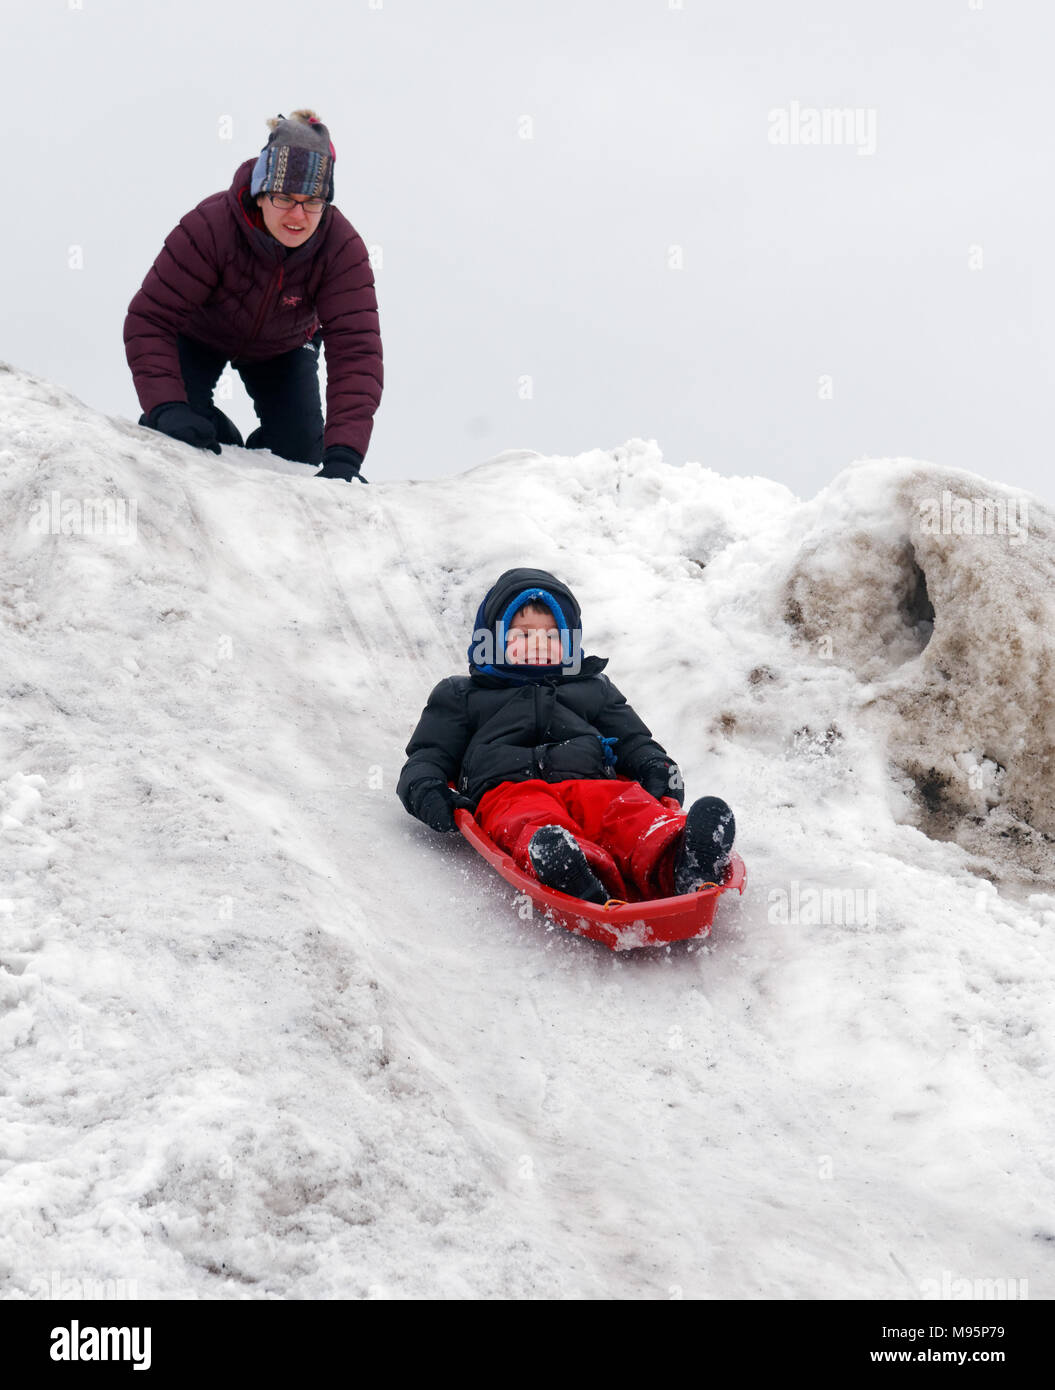 A mum watches anxiously as her son sledges down a very steep icy and wickedly quick slope - Stock Image